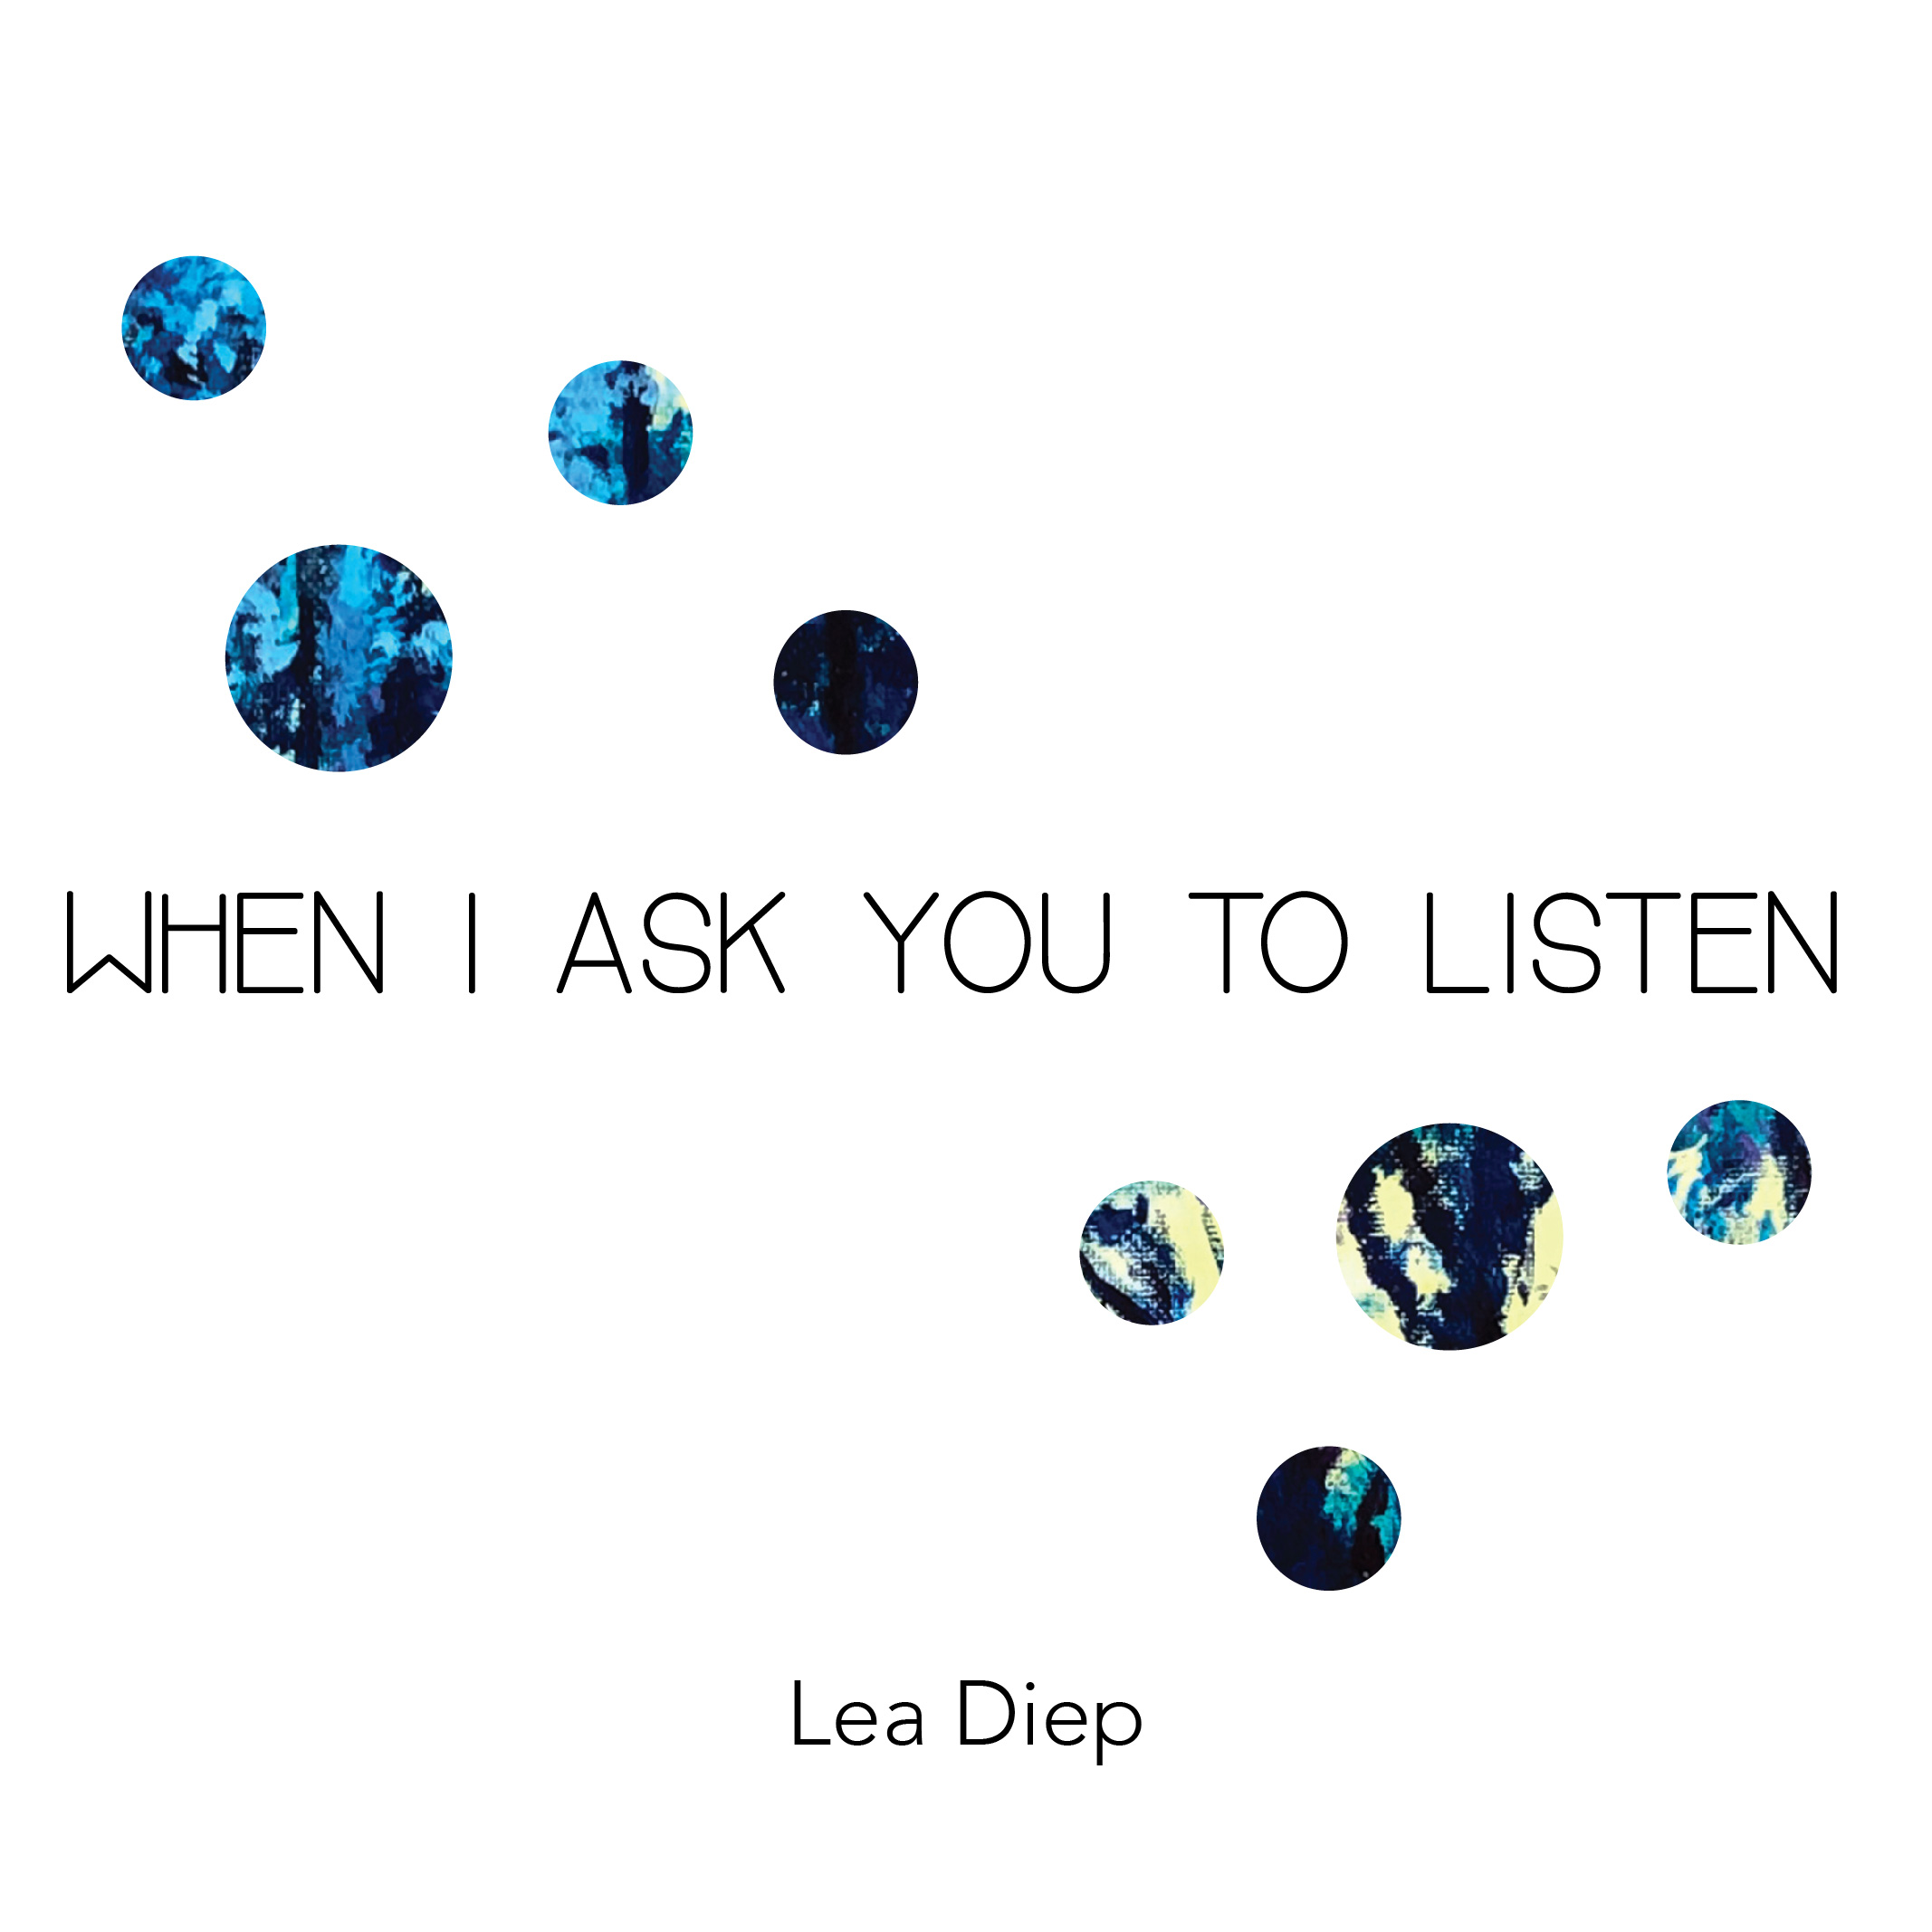 When I ask you to listen